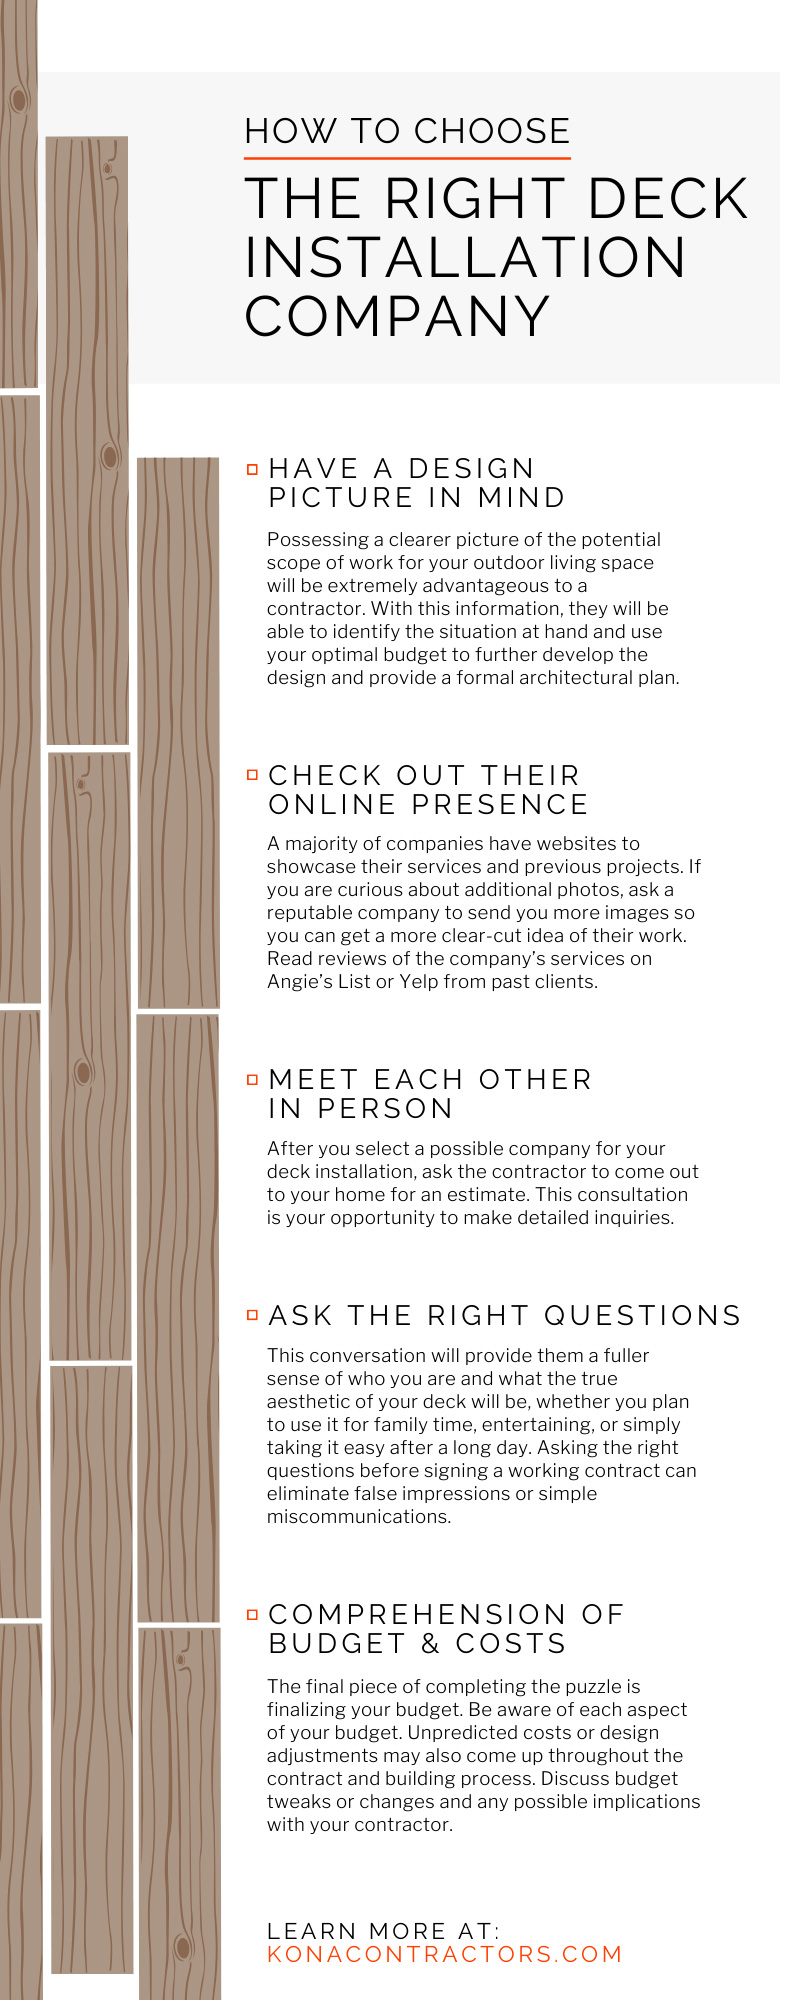 How To Choose the Right Deck Installation Company